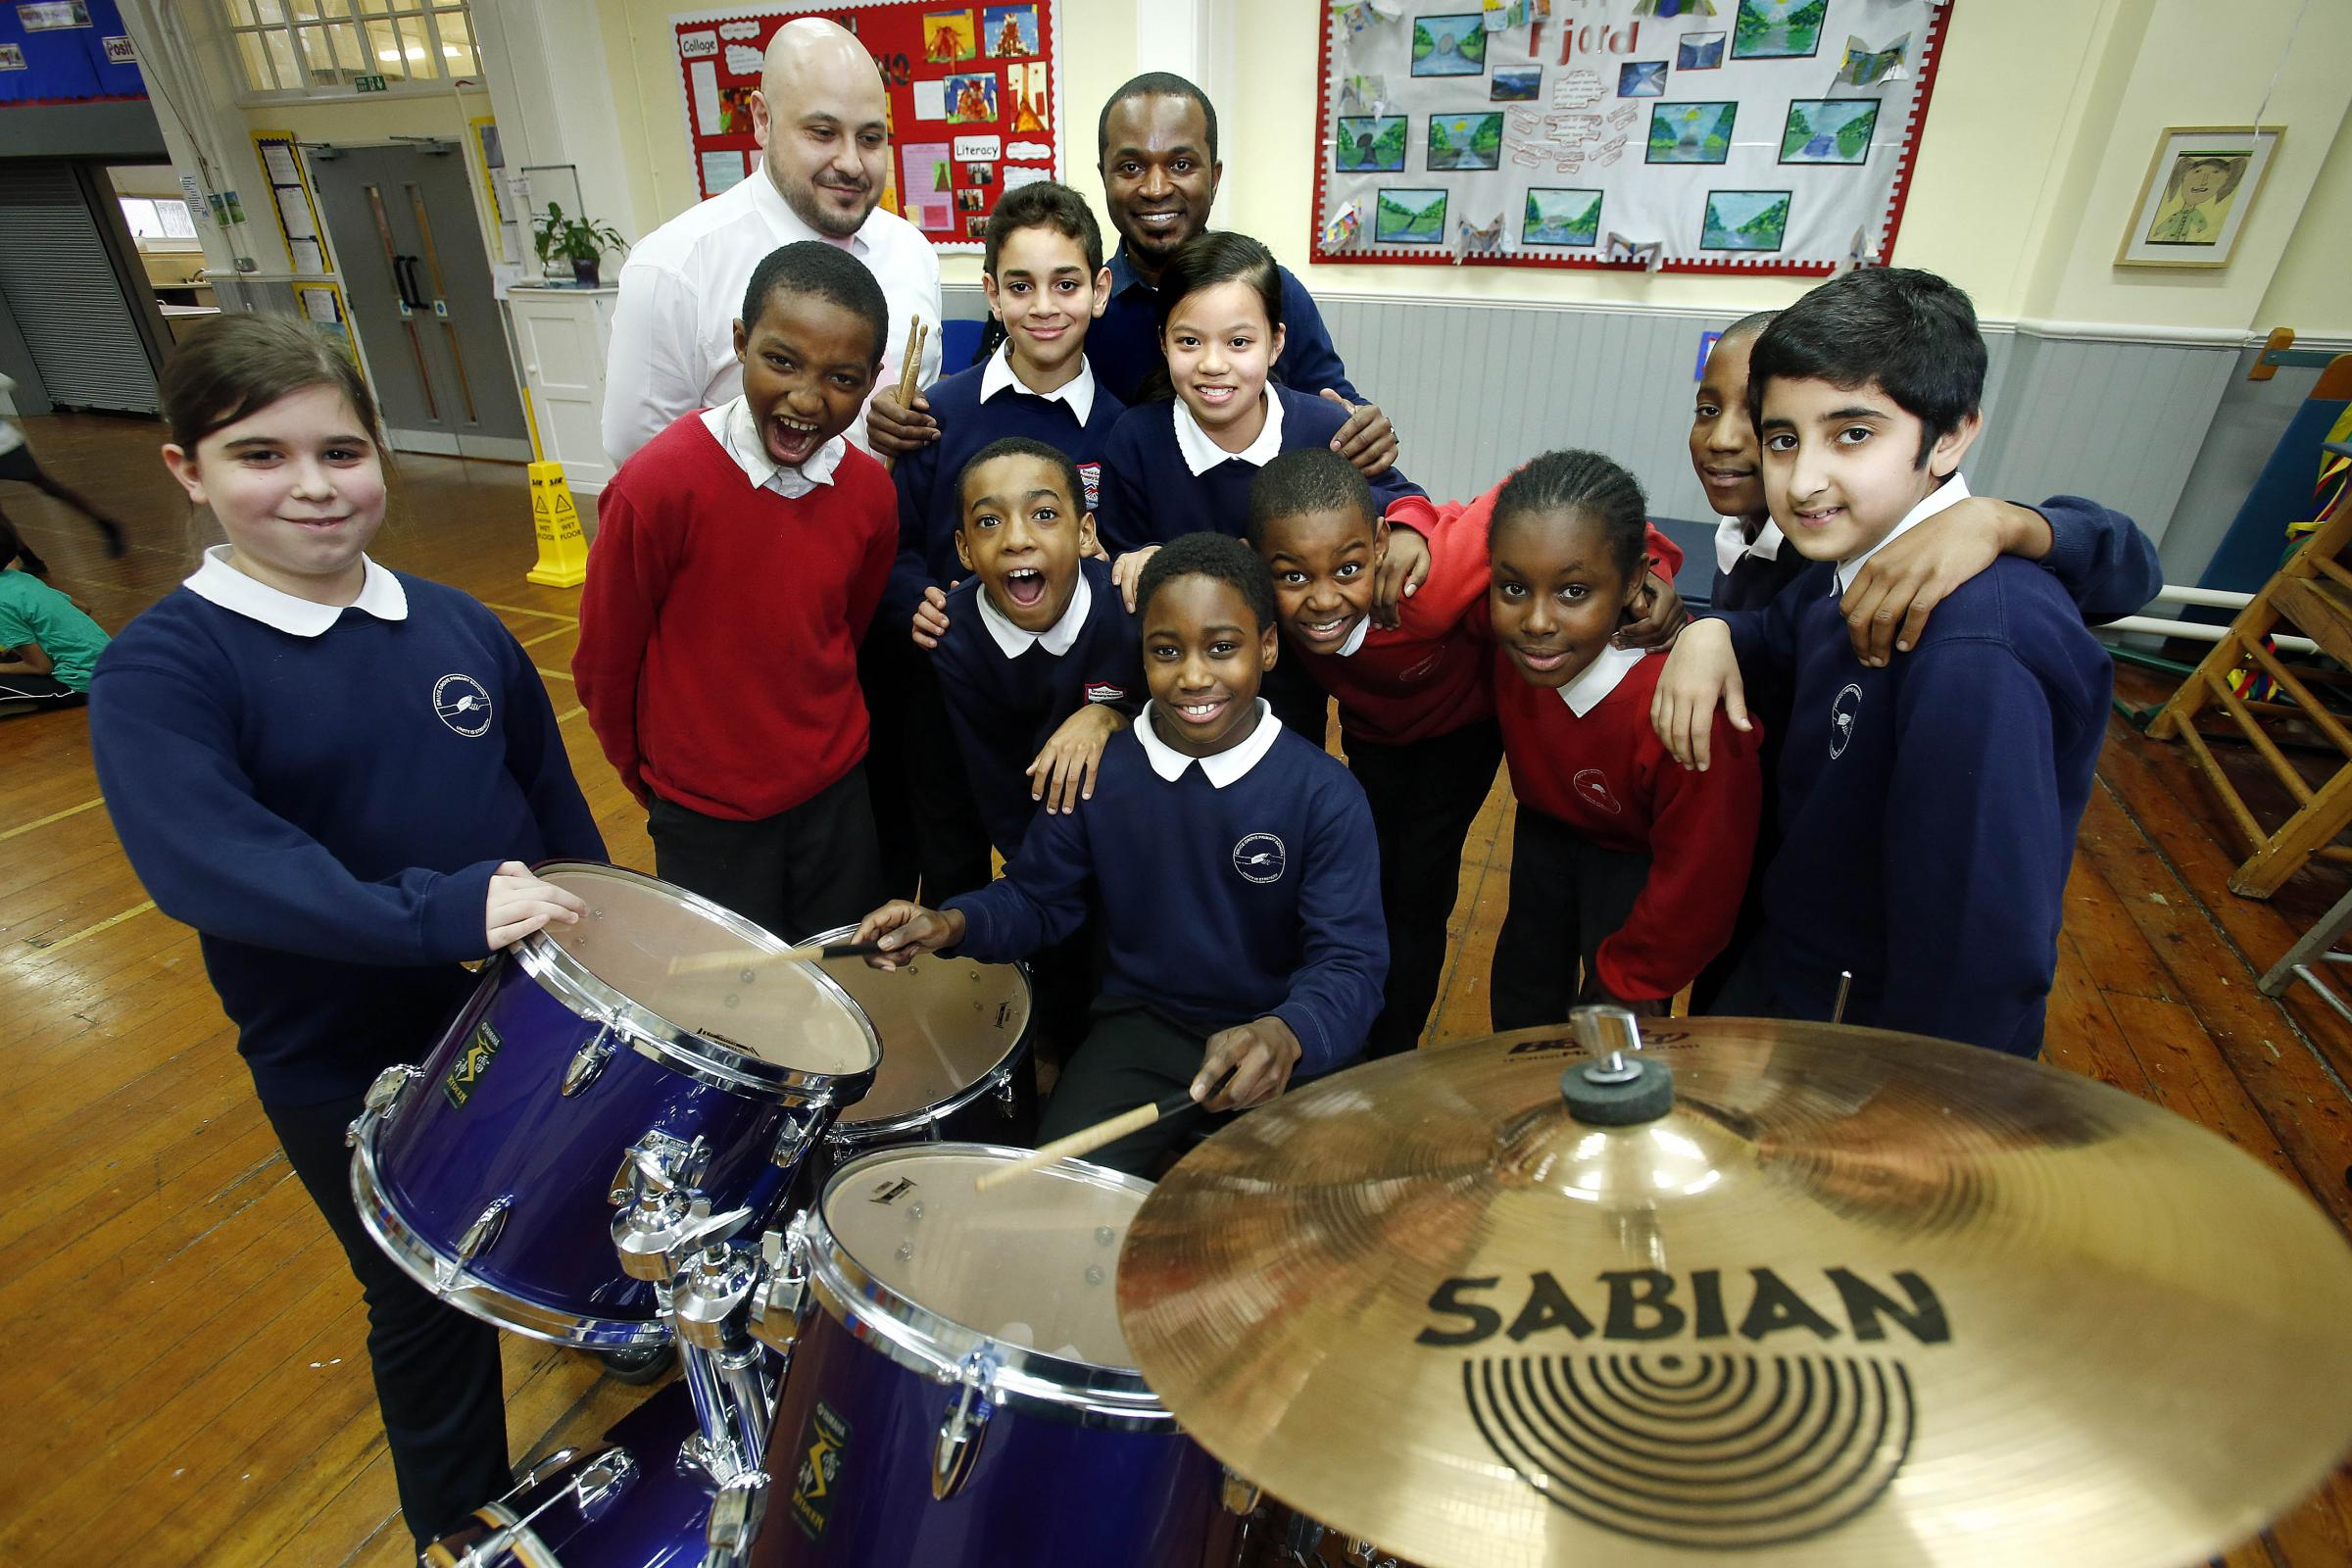 Family business donates drum kit to school